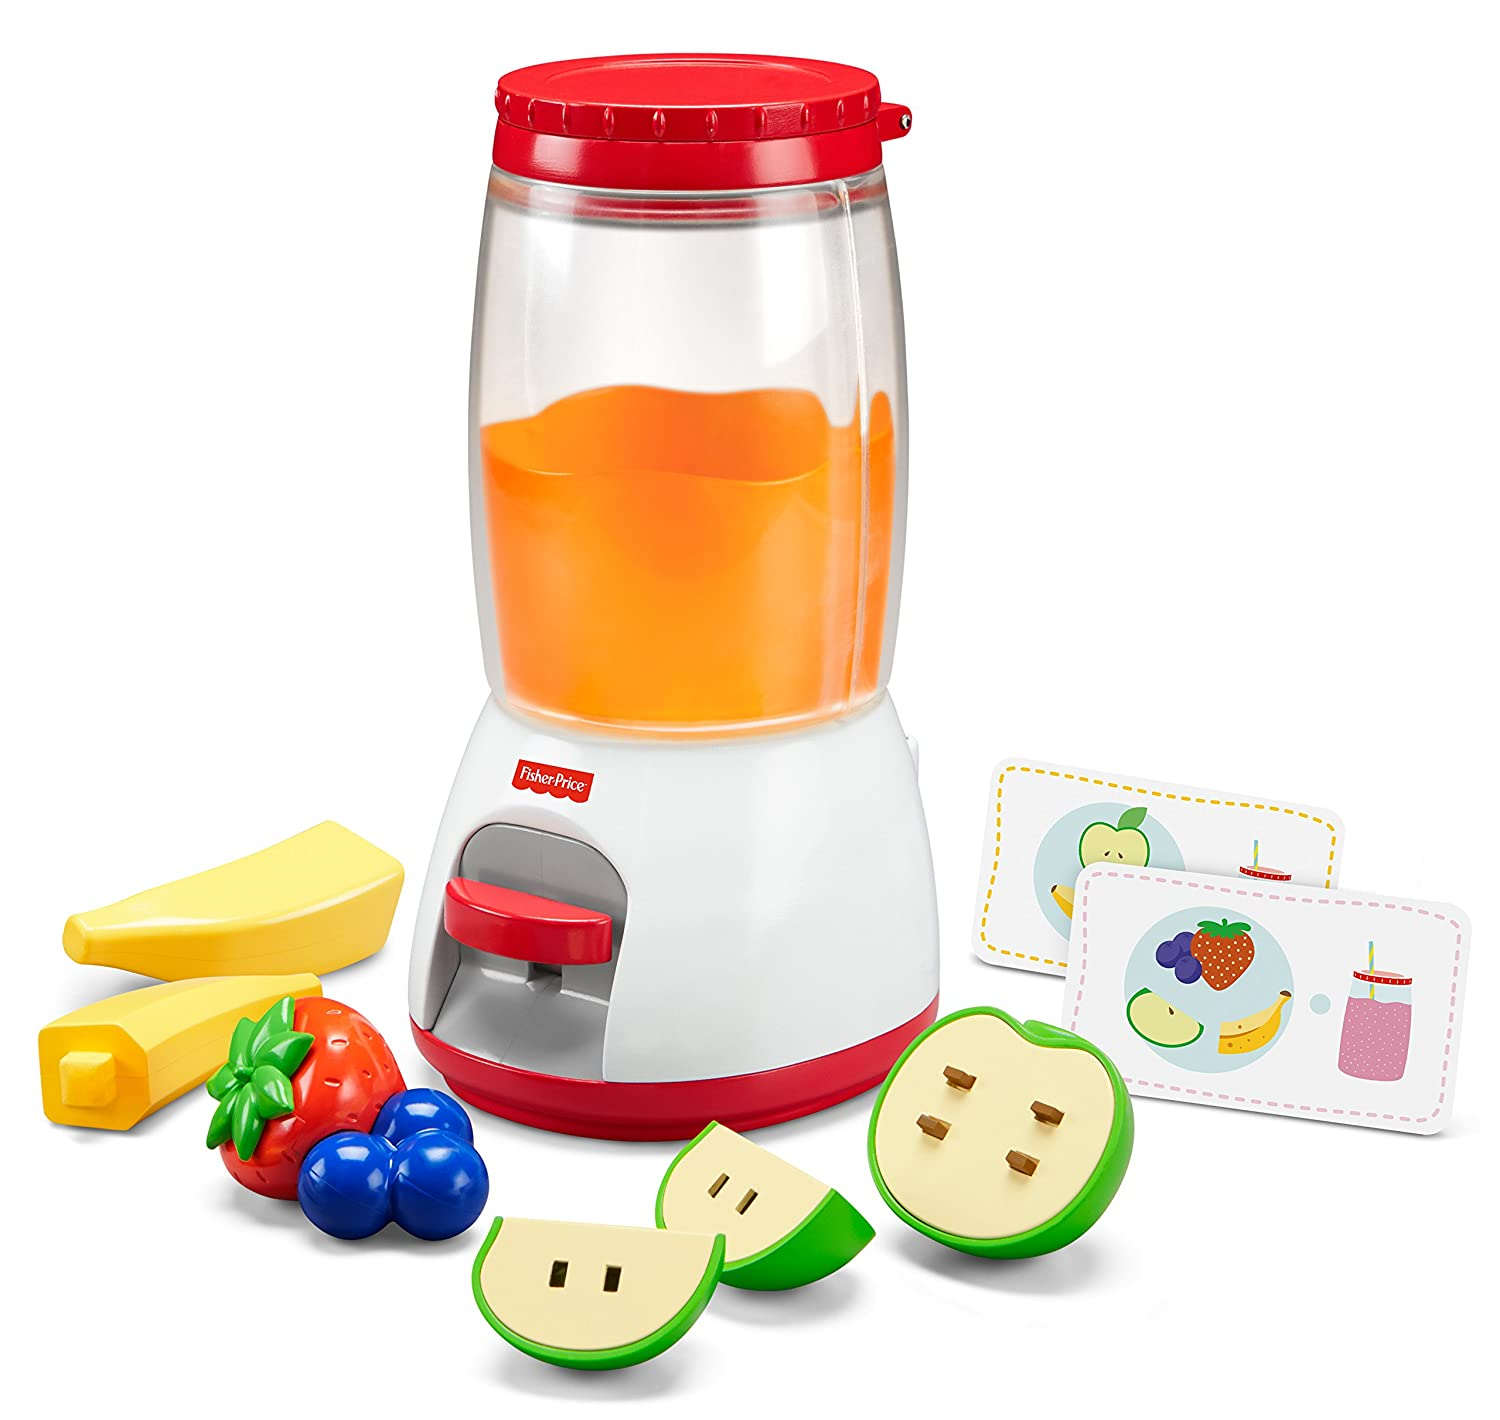 Amazon.com: Fisher-Price Mix & Serve Smoothie Maker: Toys & Games